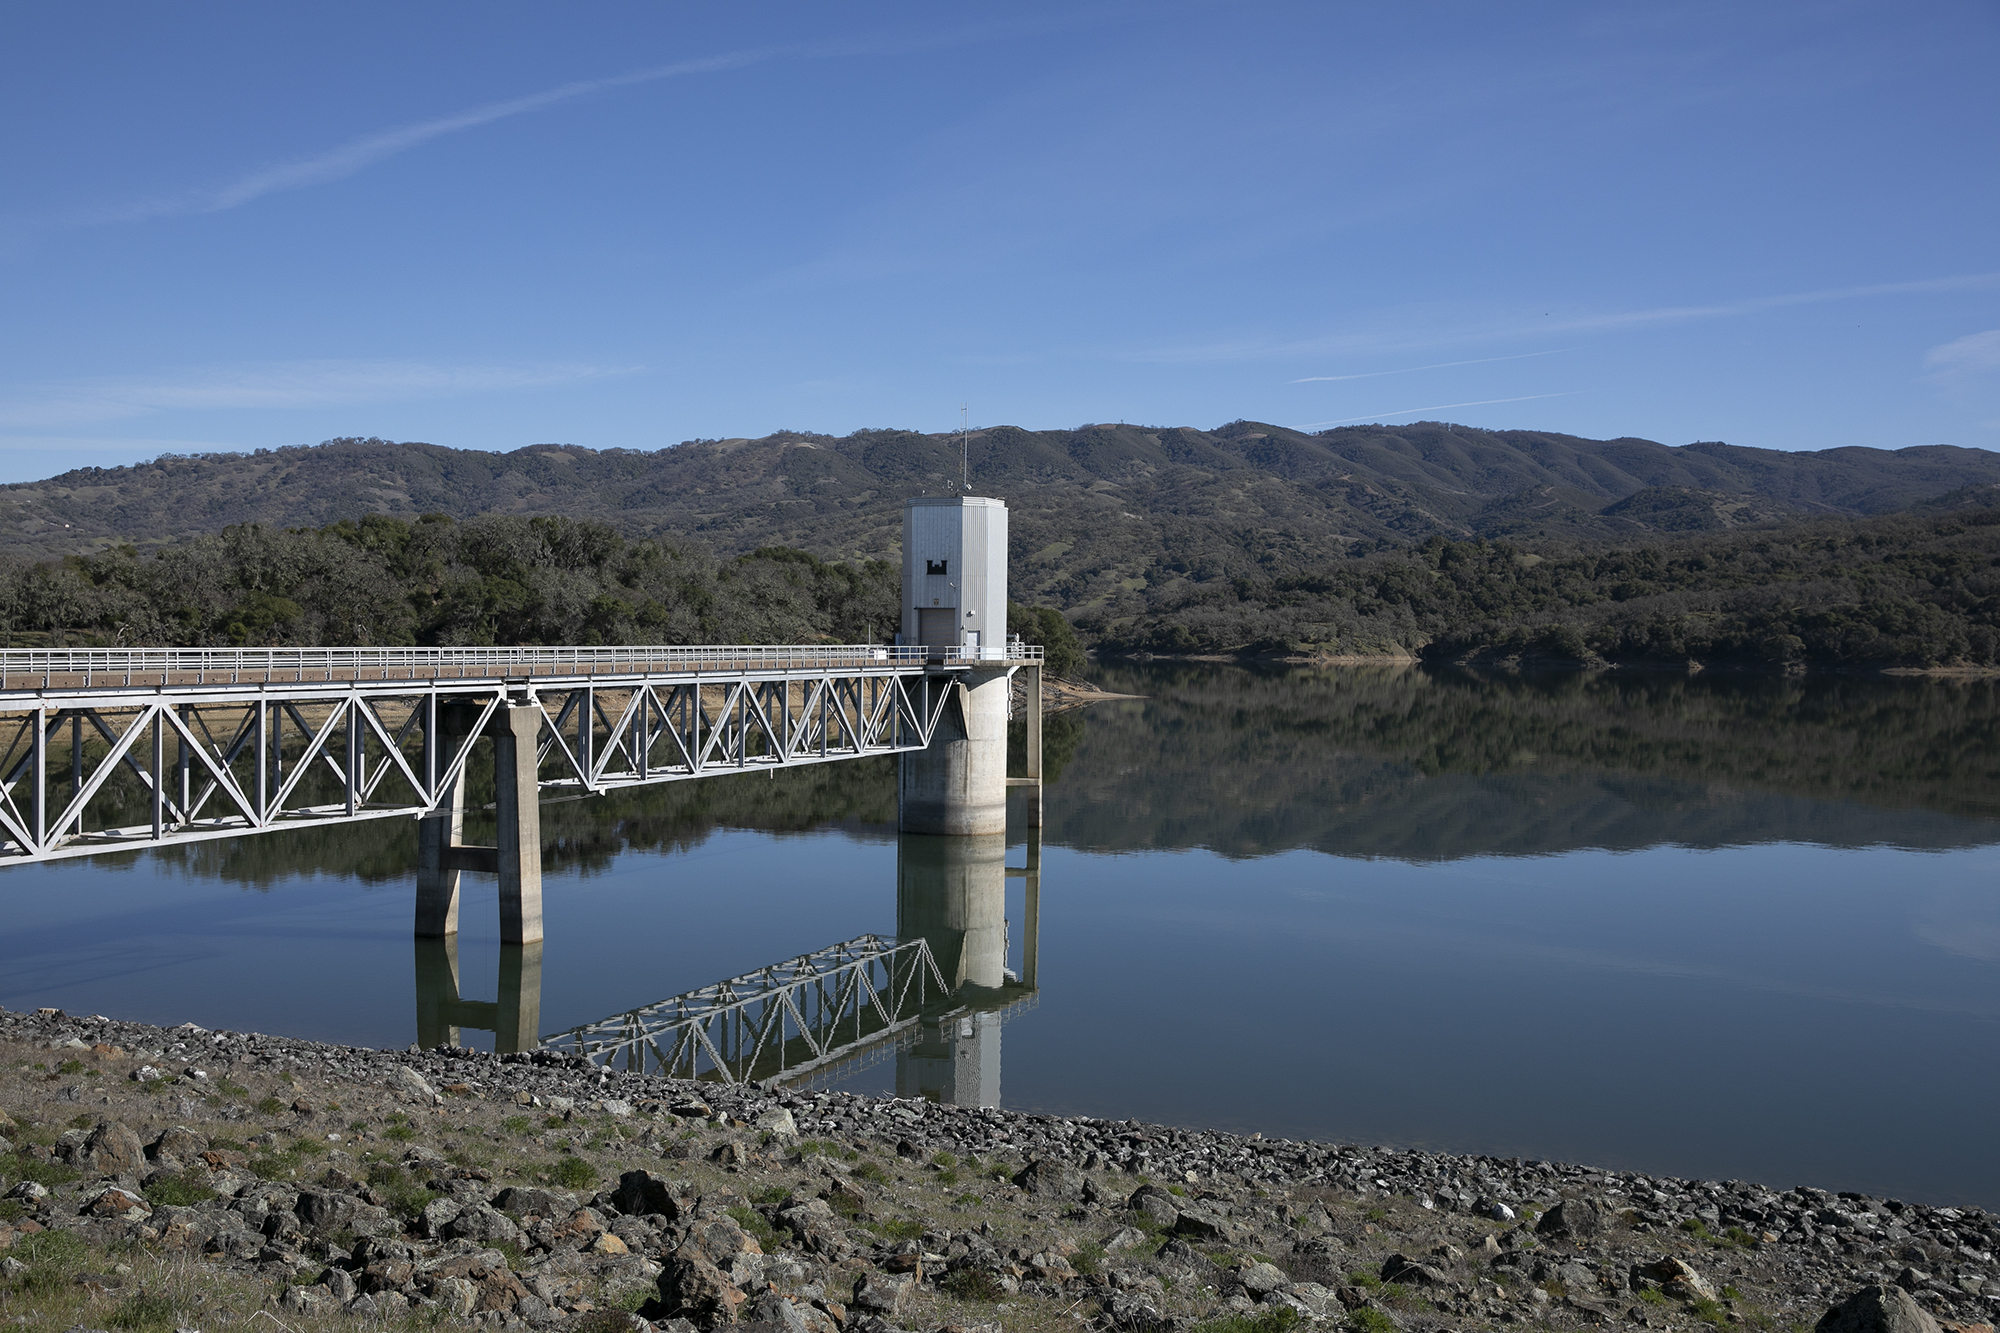 The tower that houses the flood gates at Lake Mendocino. Photo by Anne Wernikoff for CalMatters